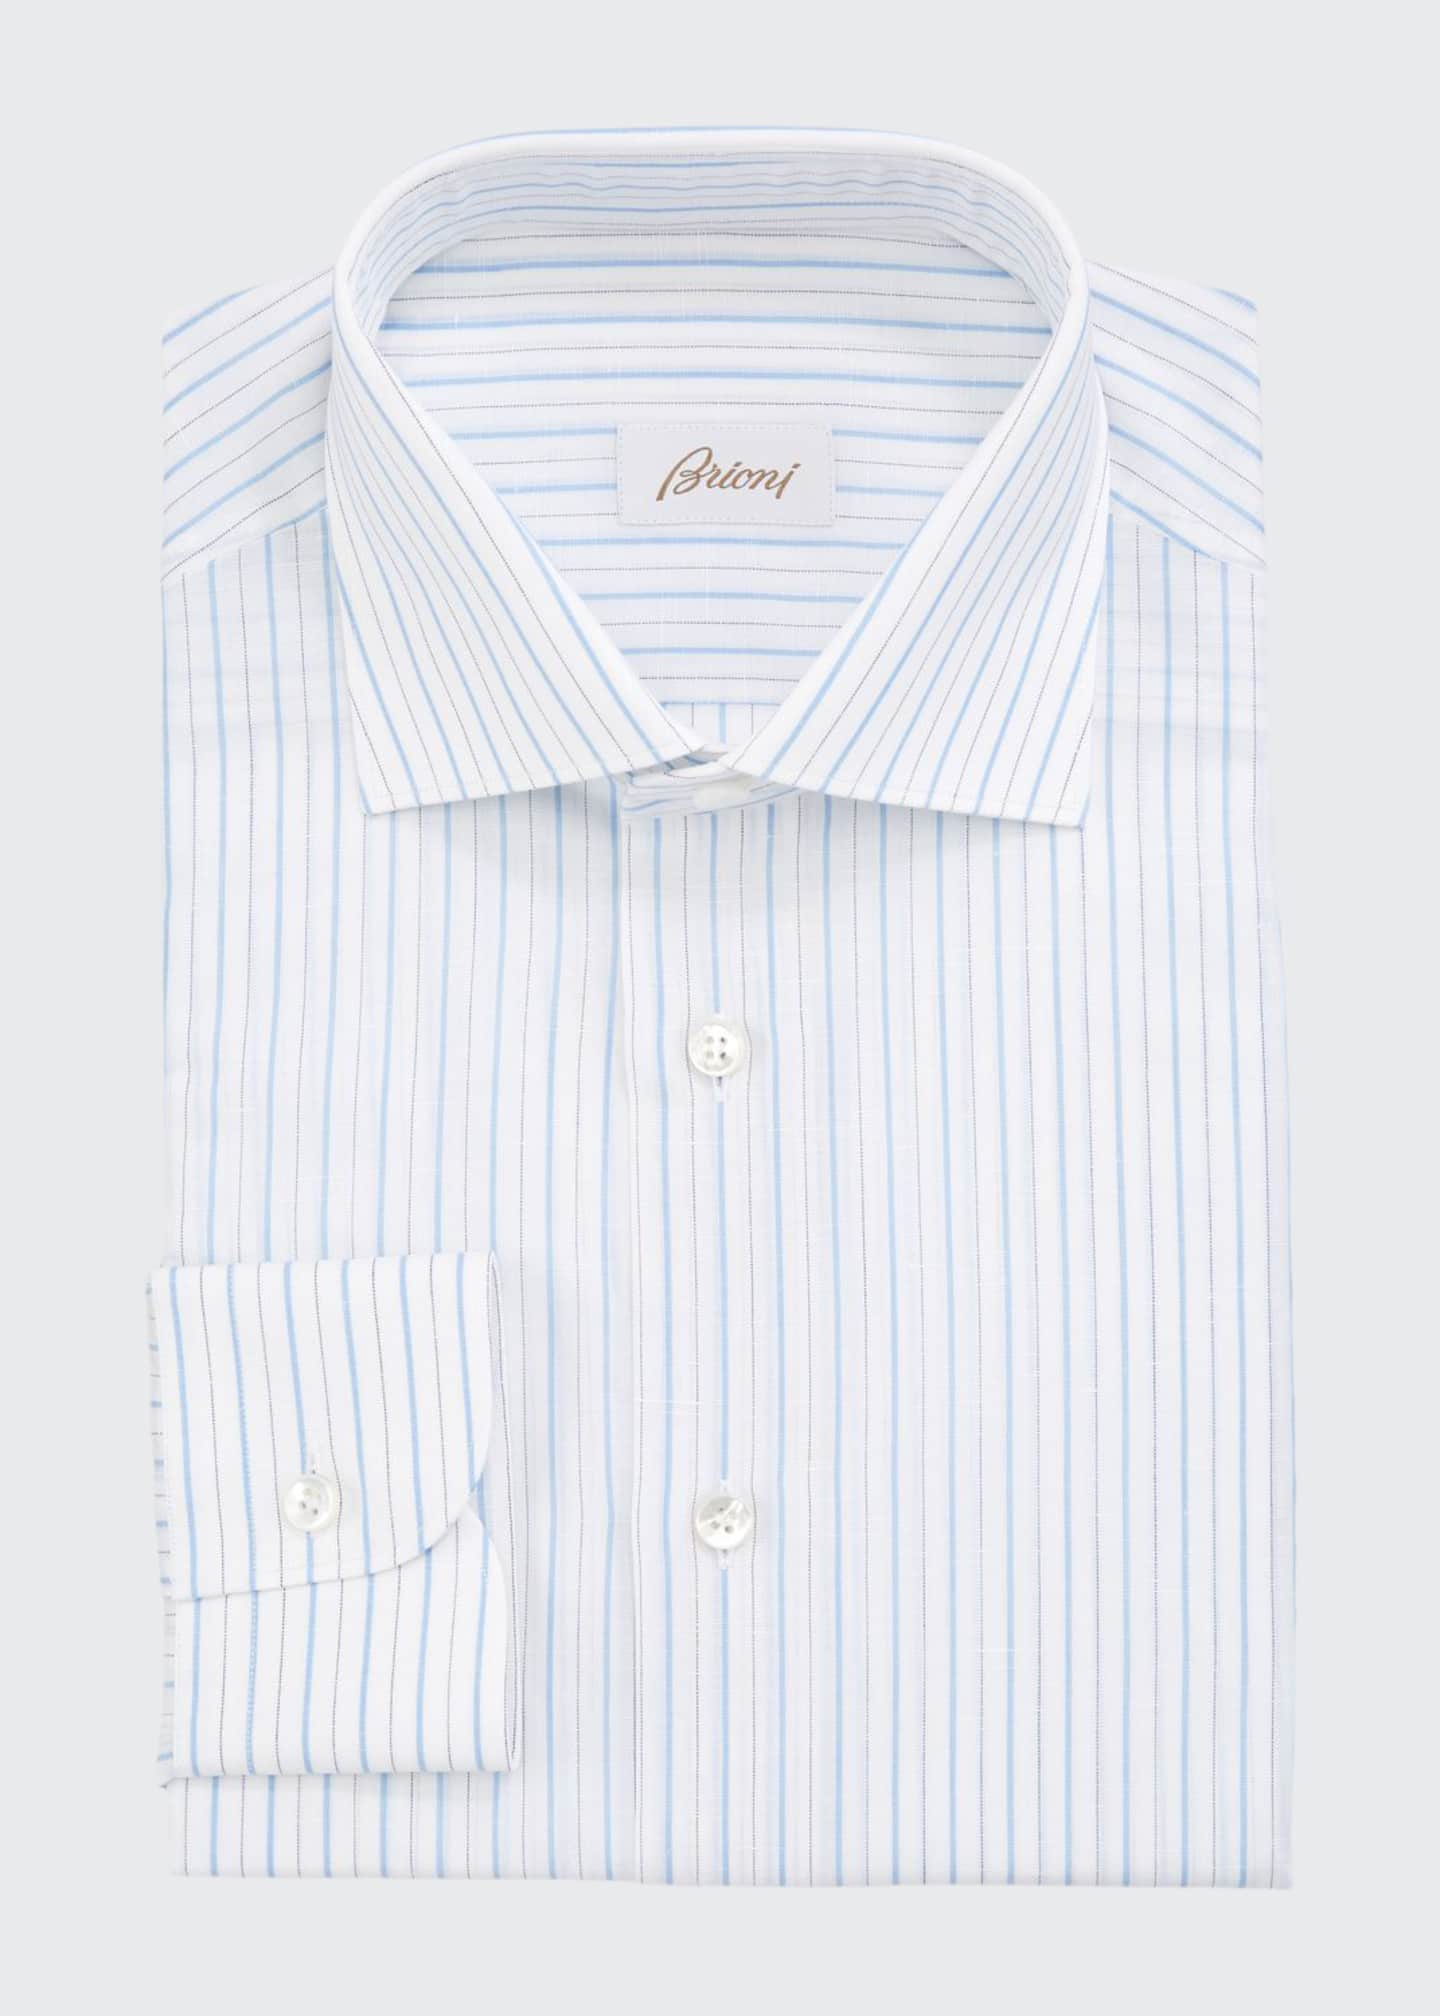 Brioni Men's Cotton-Linen Striped Dress Shirt